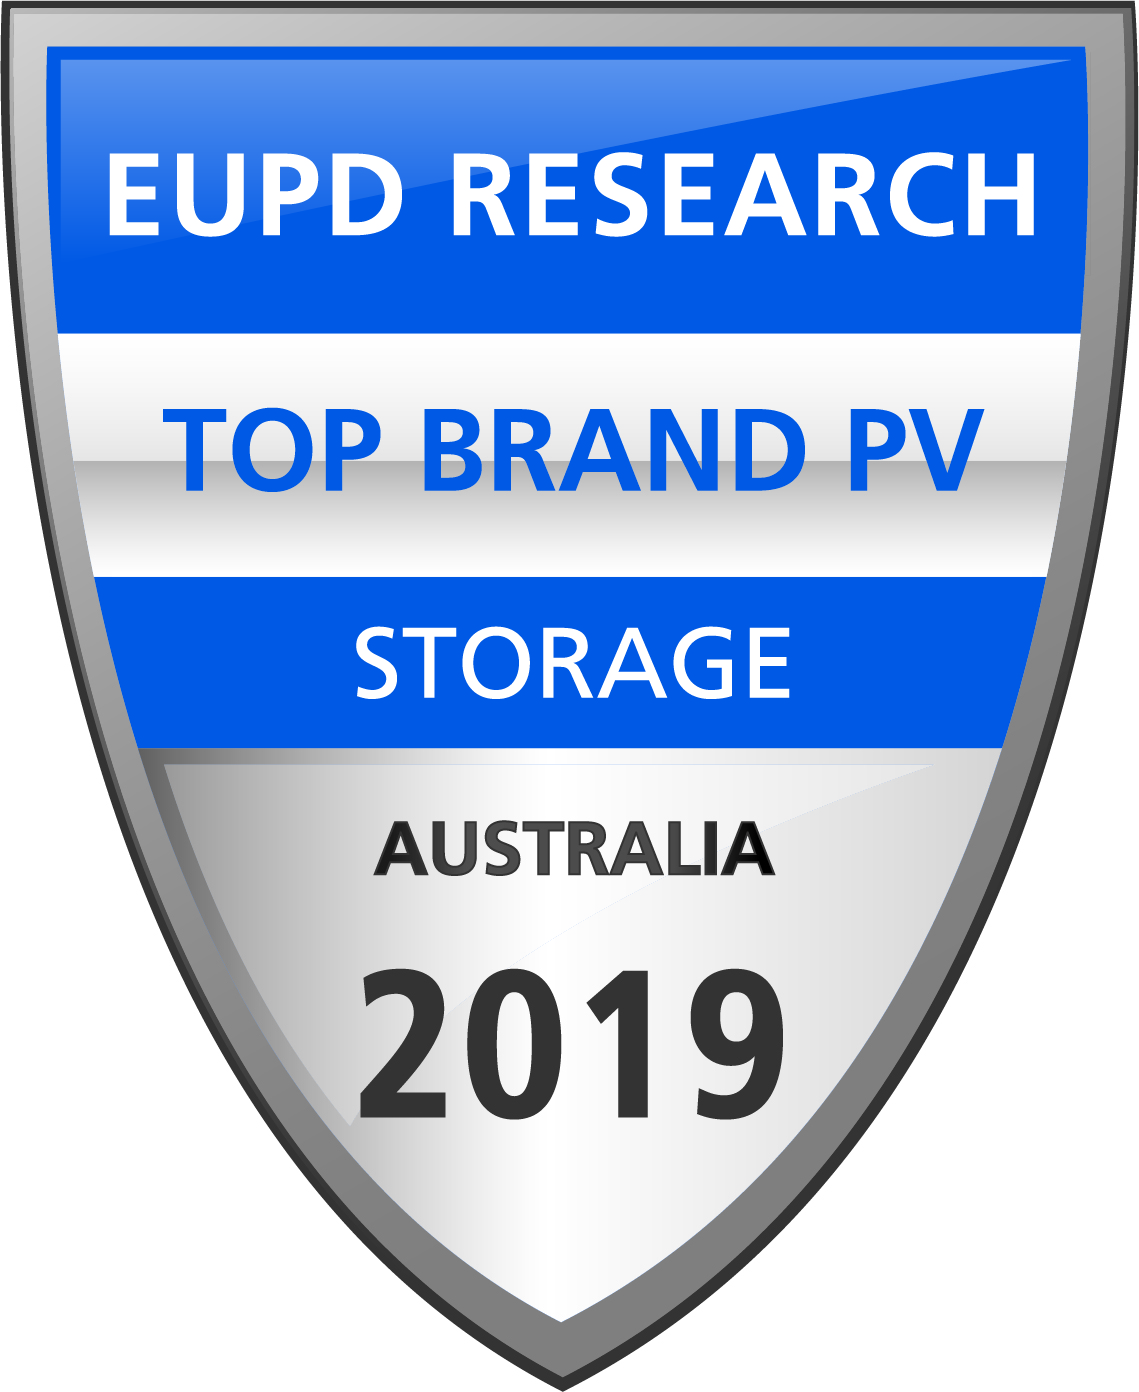 EuPD Top Brand PV Storage for BYD in Australia